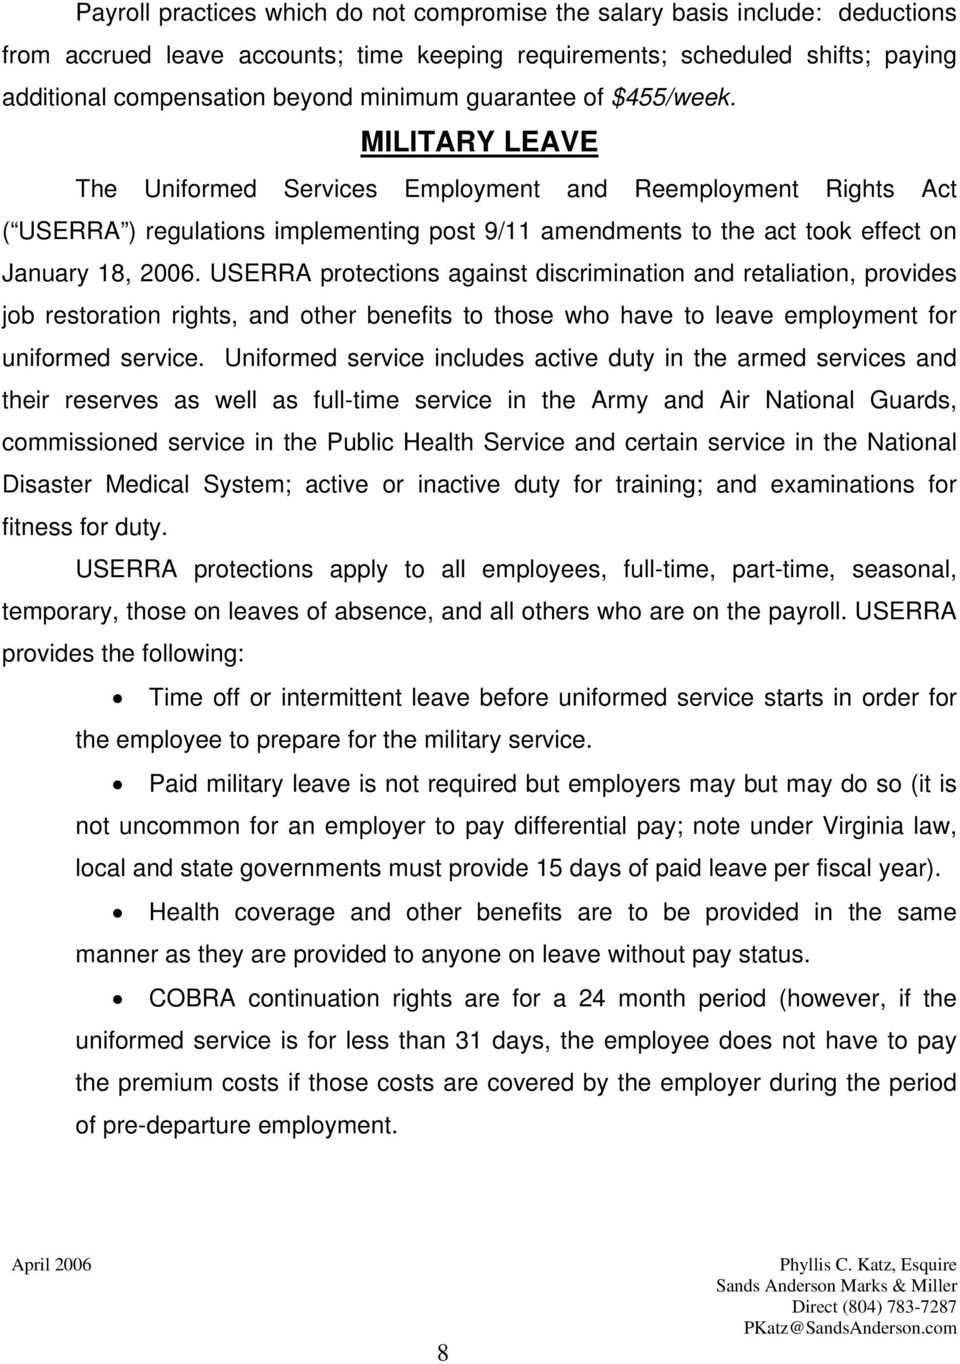 MILITARY LEAVE The Uniformed Services Employment and Reemployment Rights Act ( USERRA ) regulations implementing post 9/11 amendments to the act took effect on January 18, 2006.